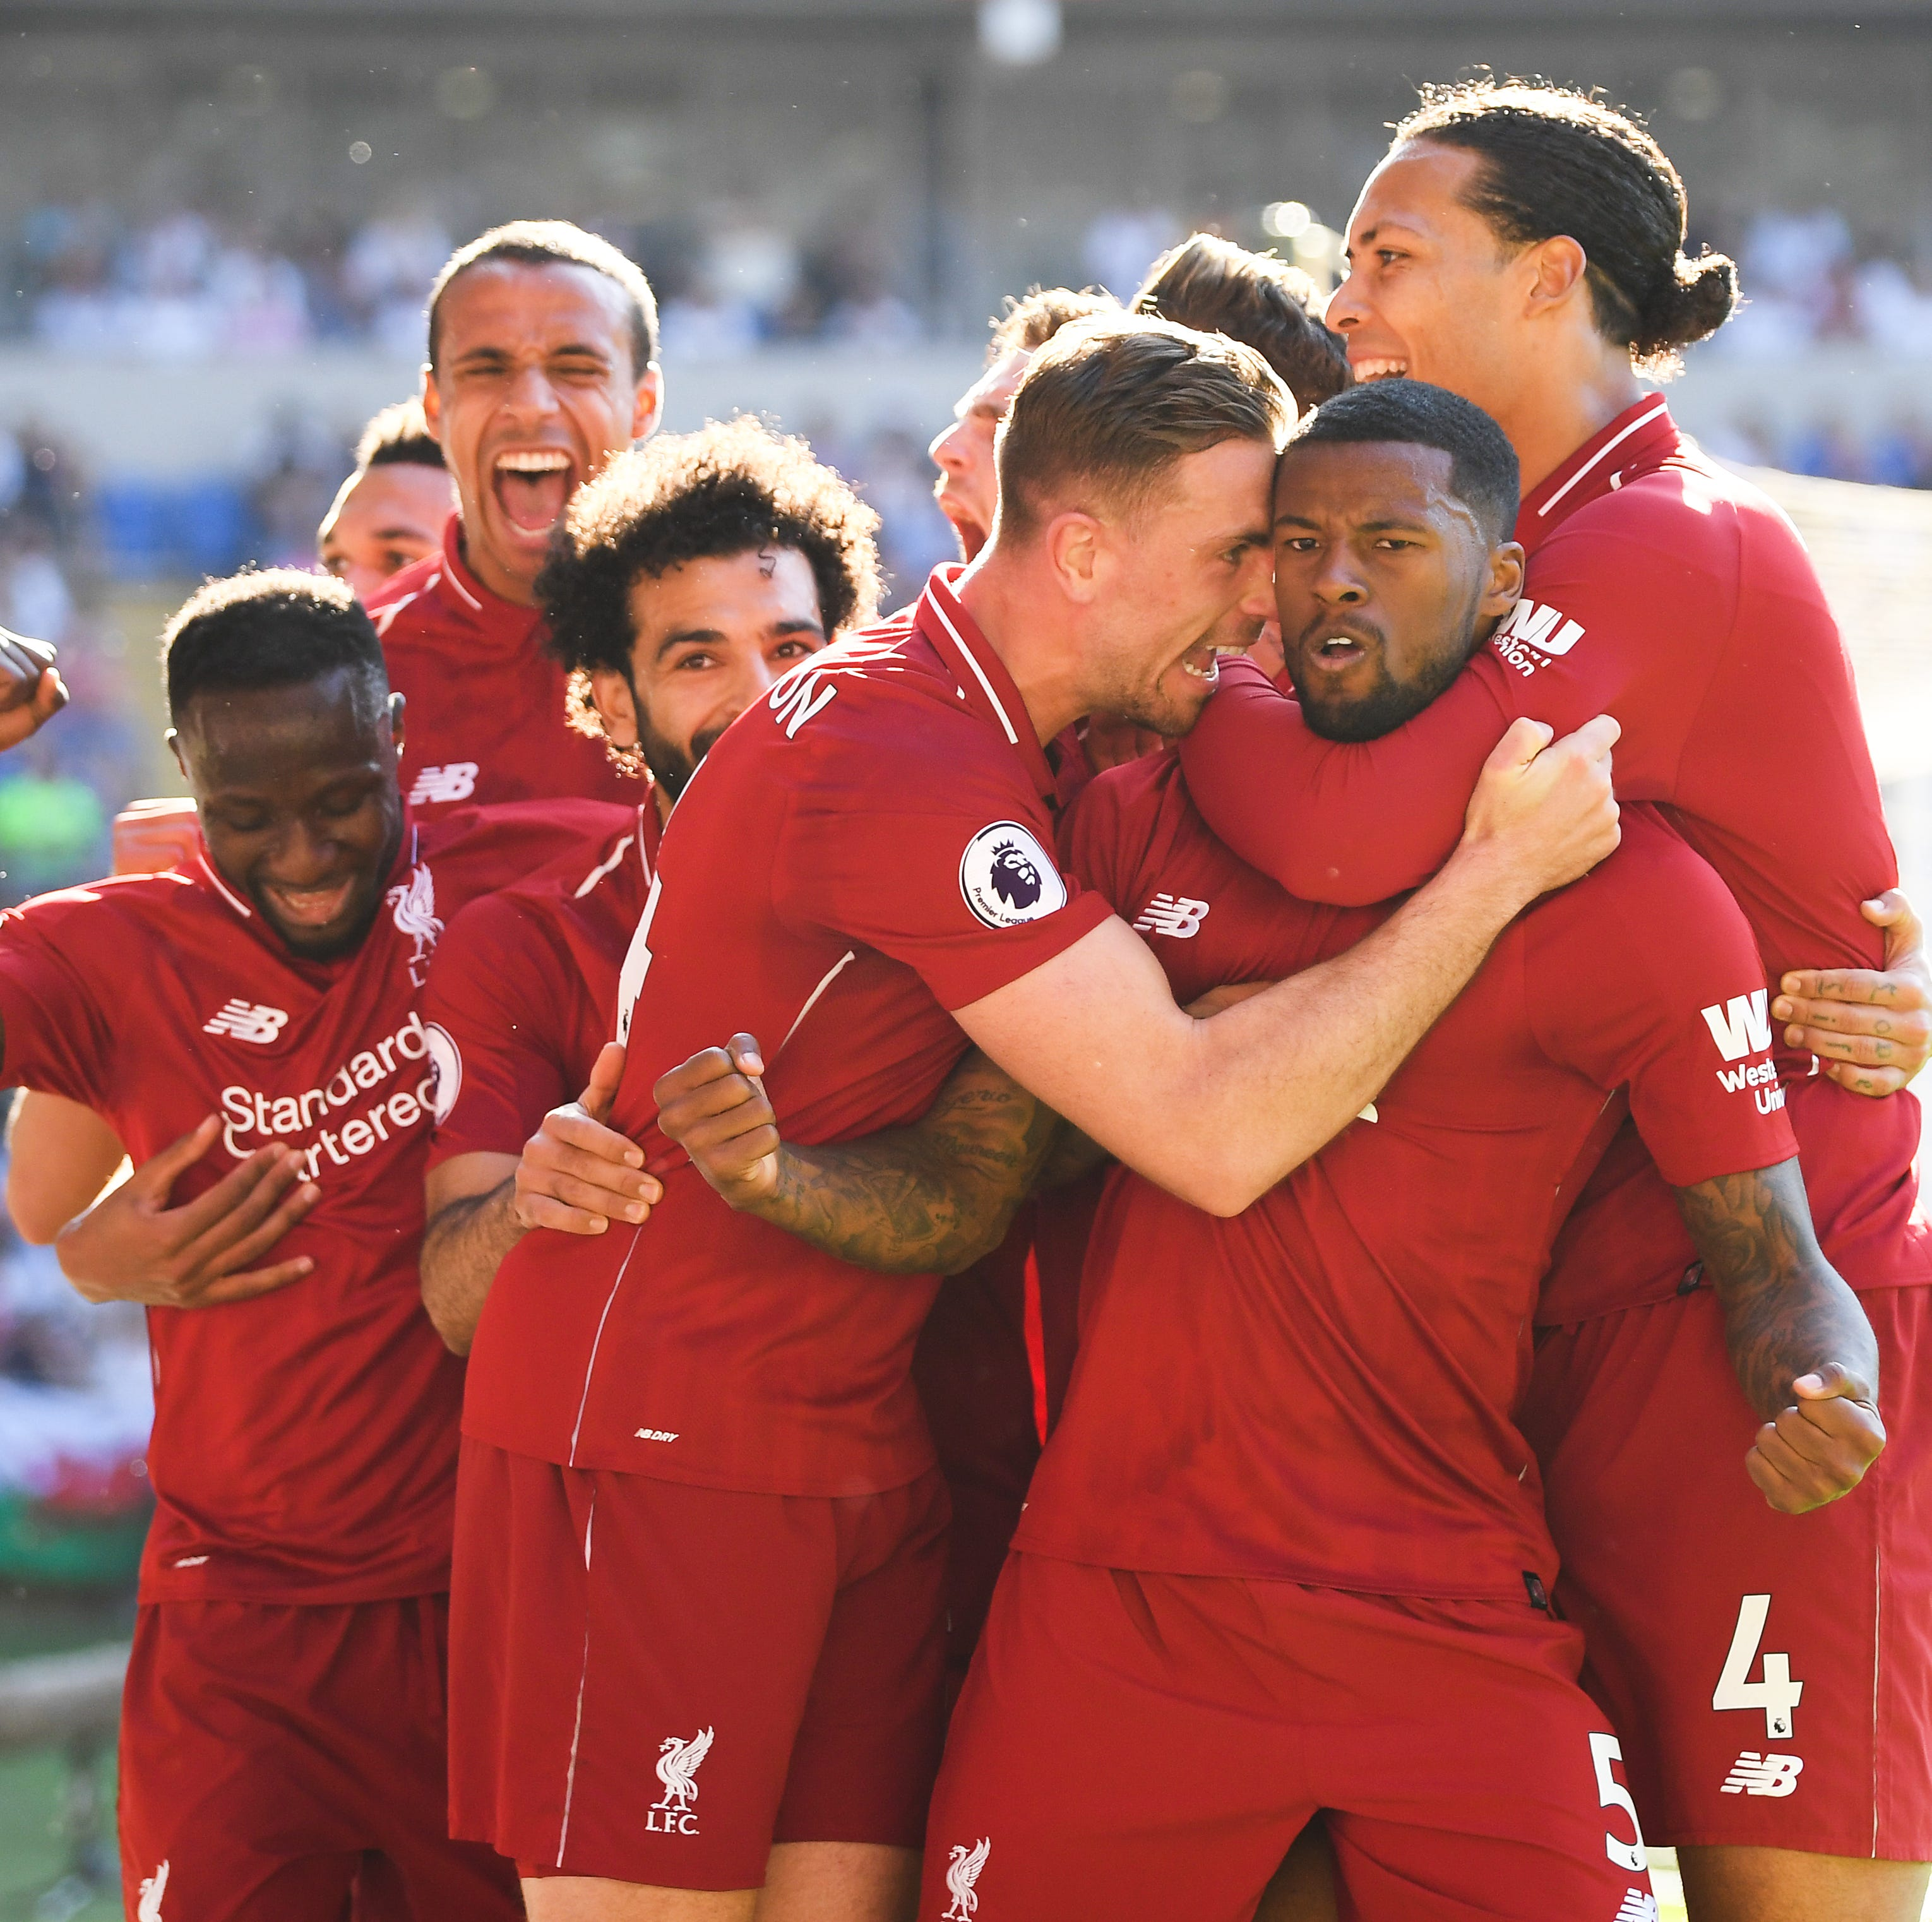 It's official: Liverpool FC is coming to Notre Dame this summer